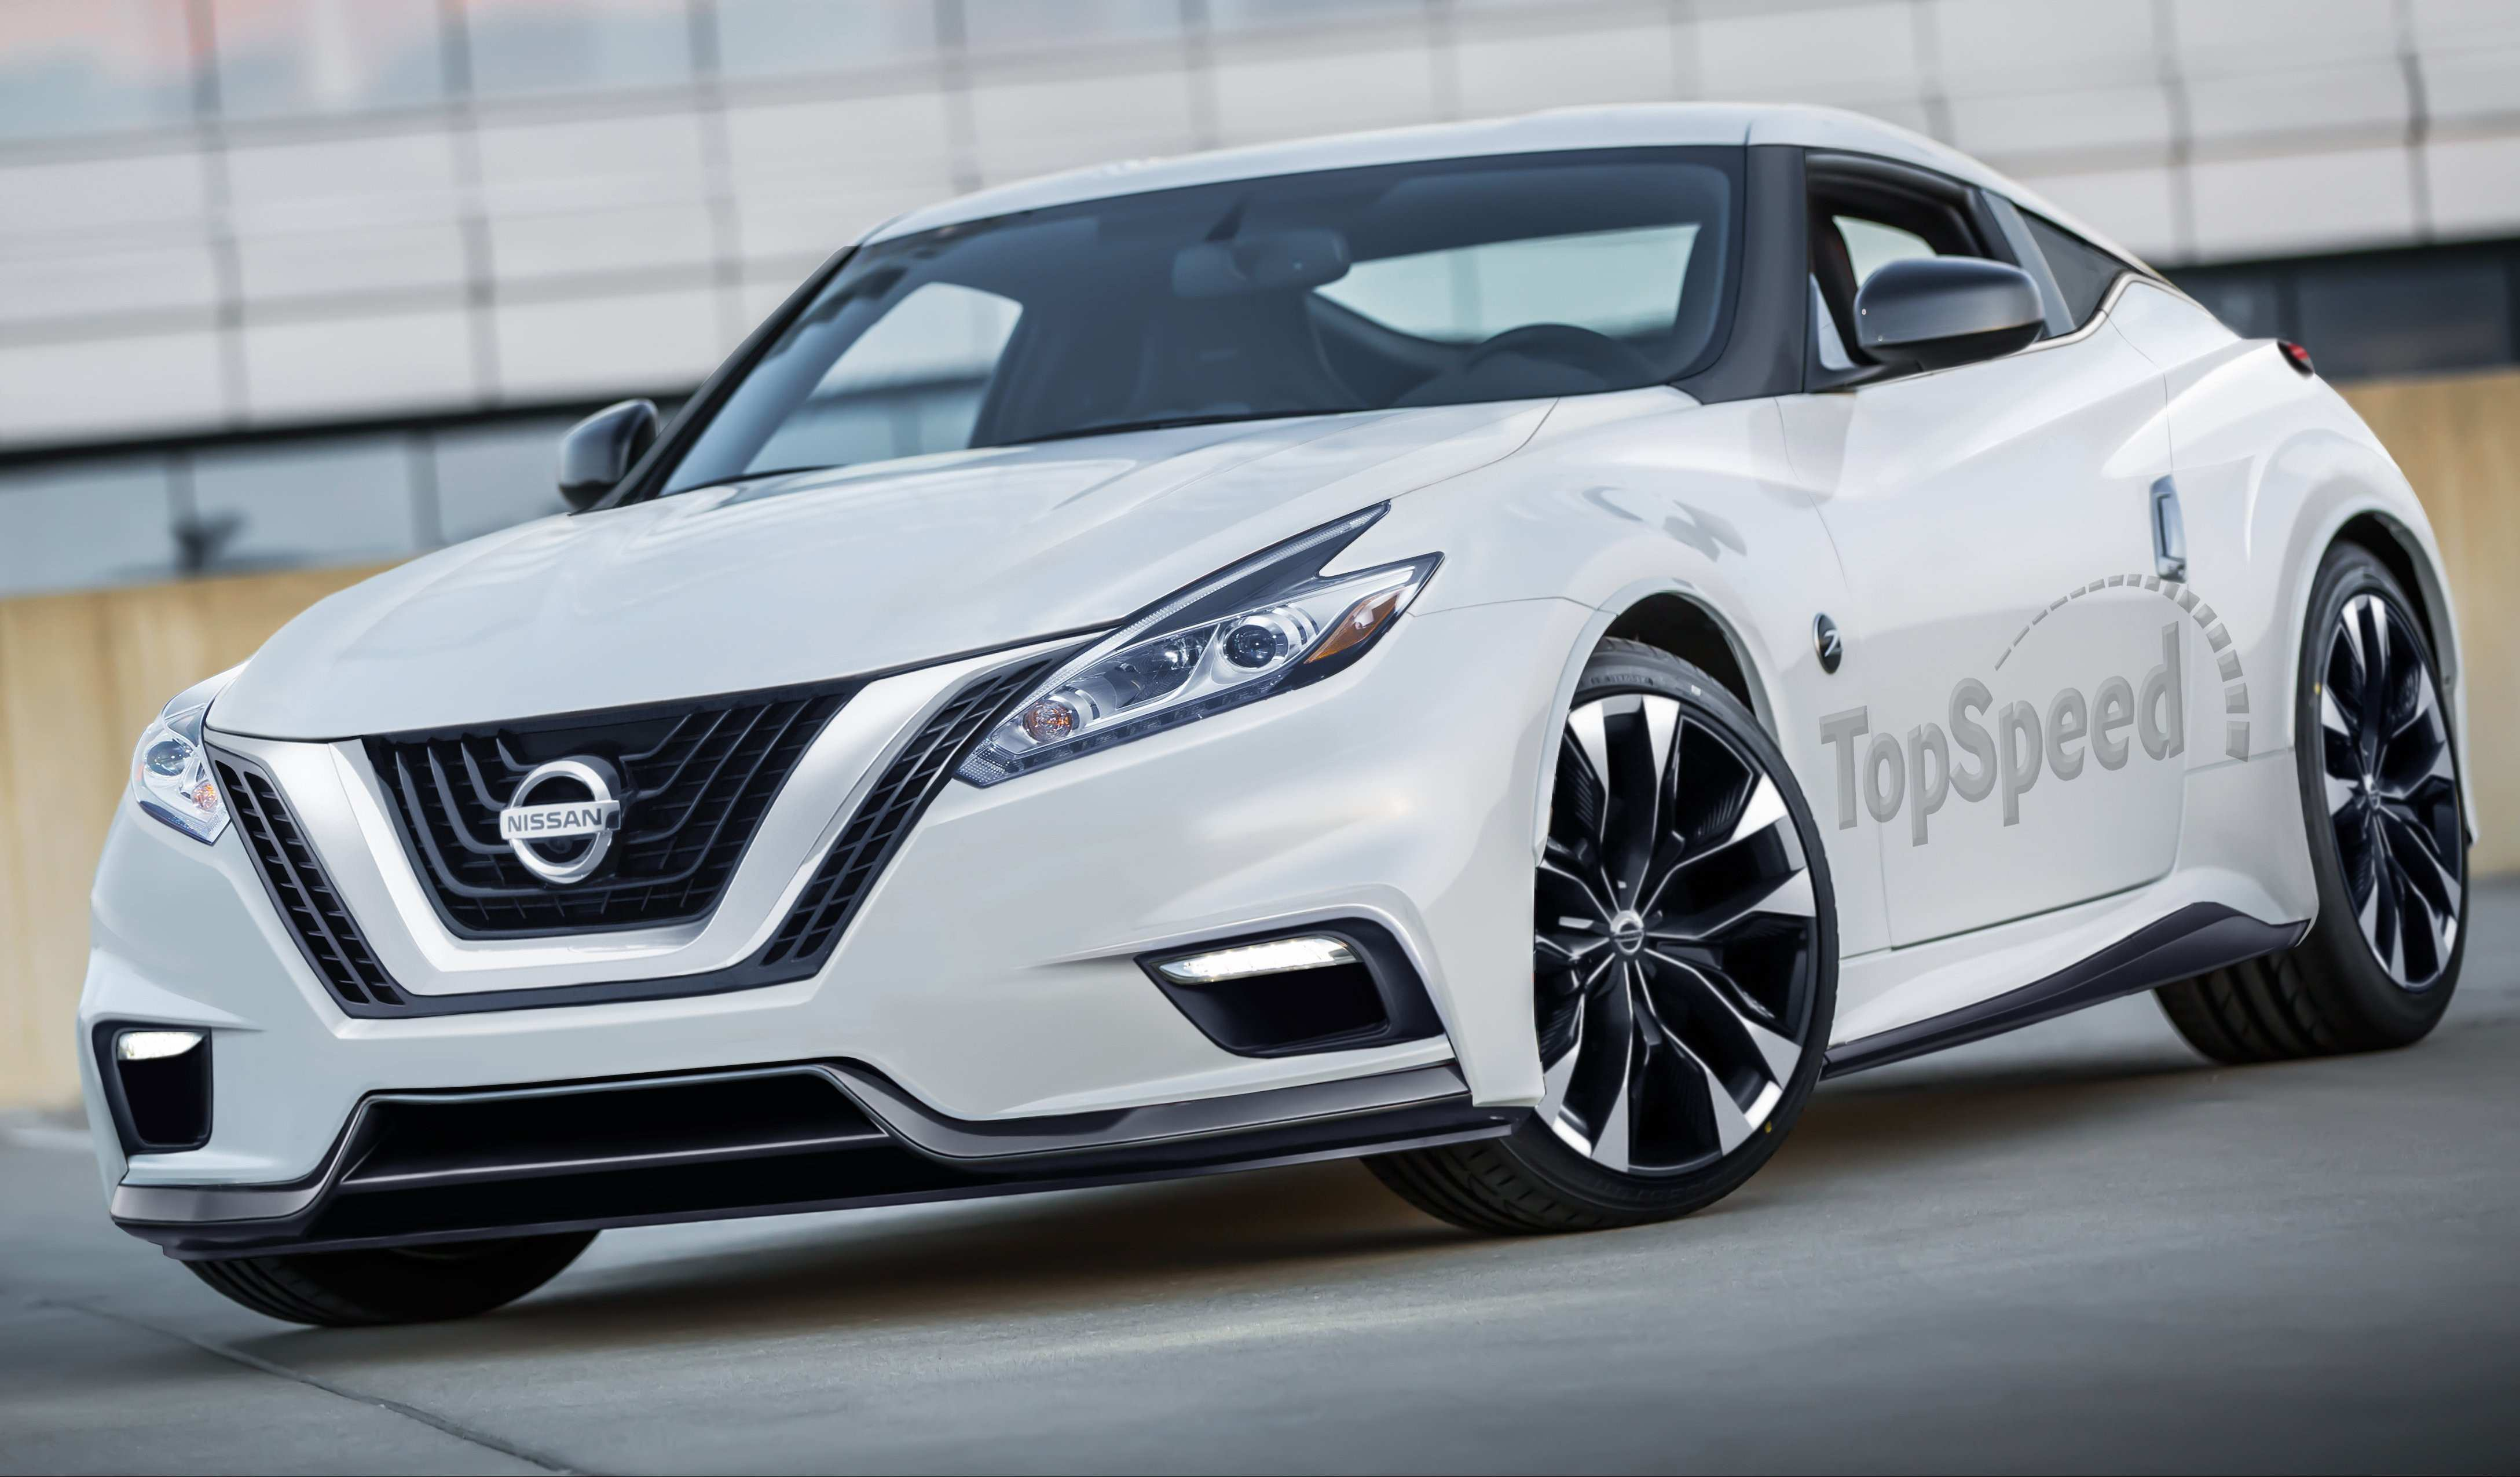 90 A 2020 Nissan Z35 Speed Test